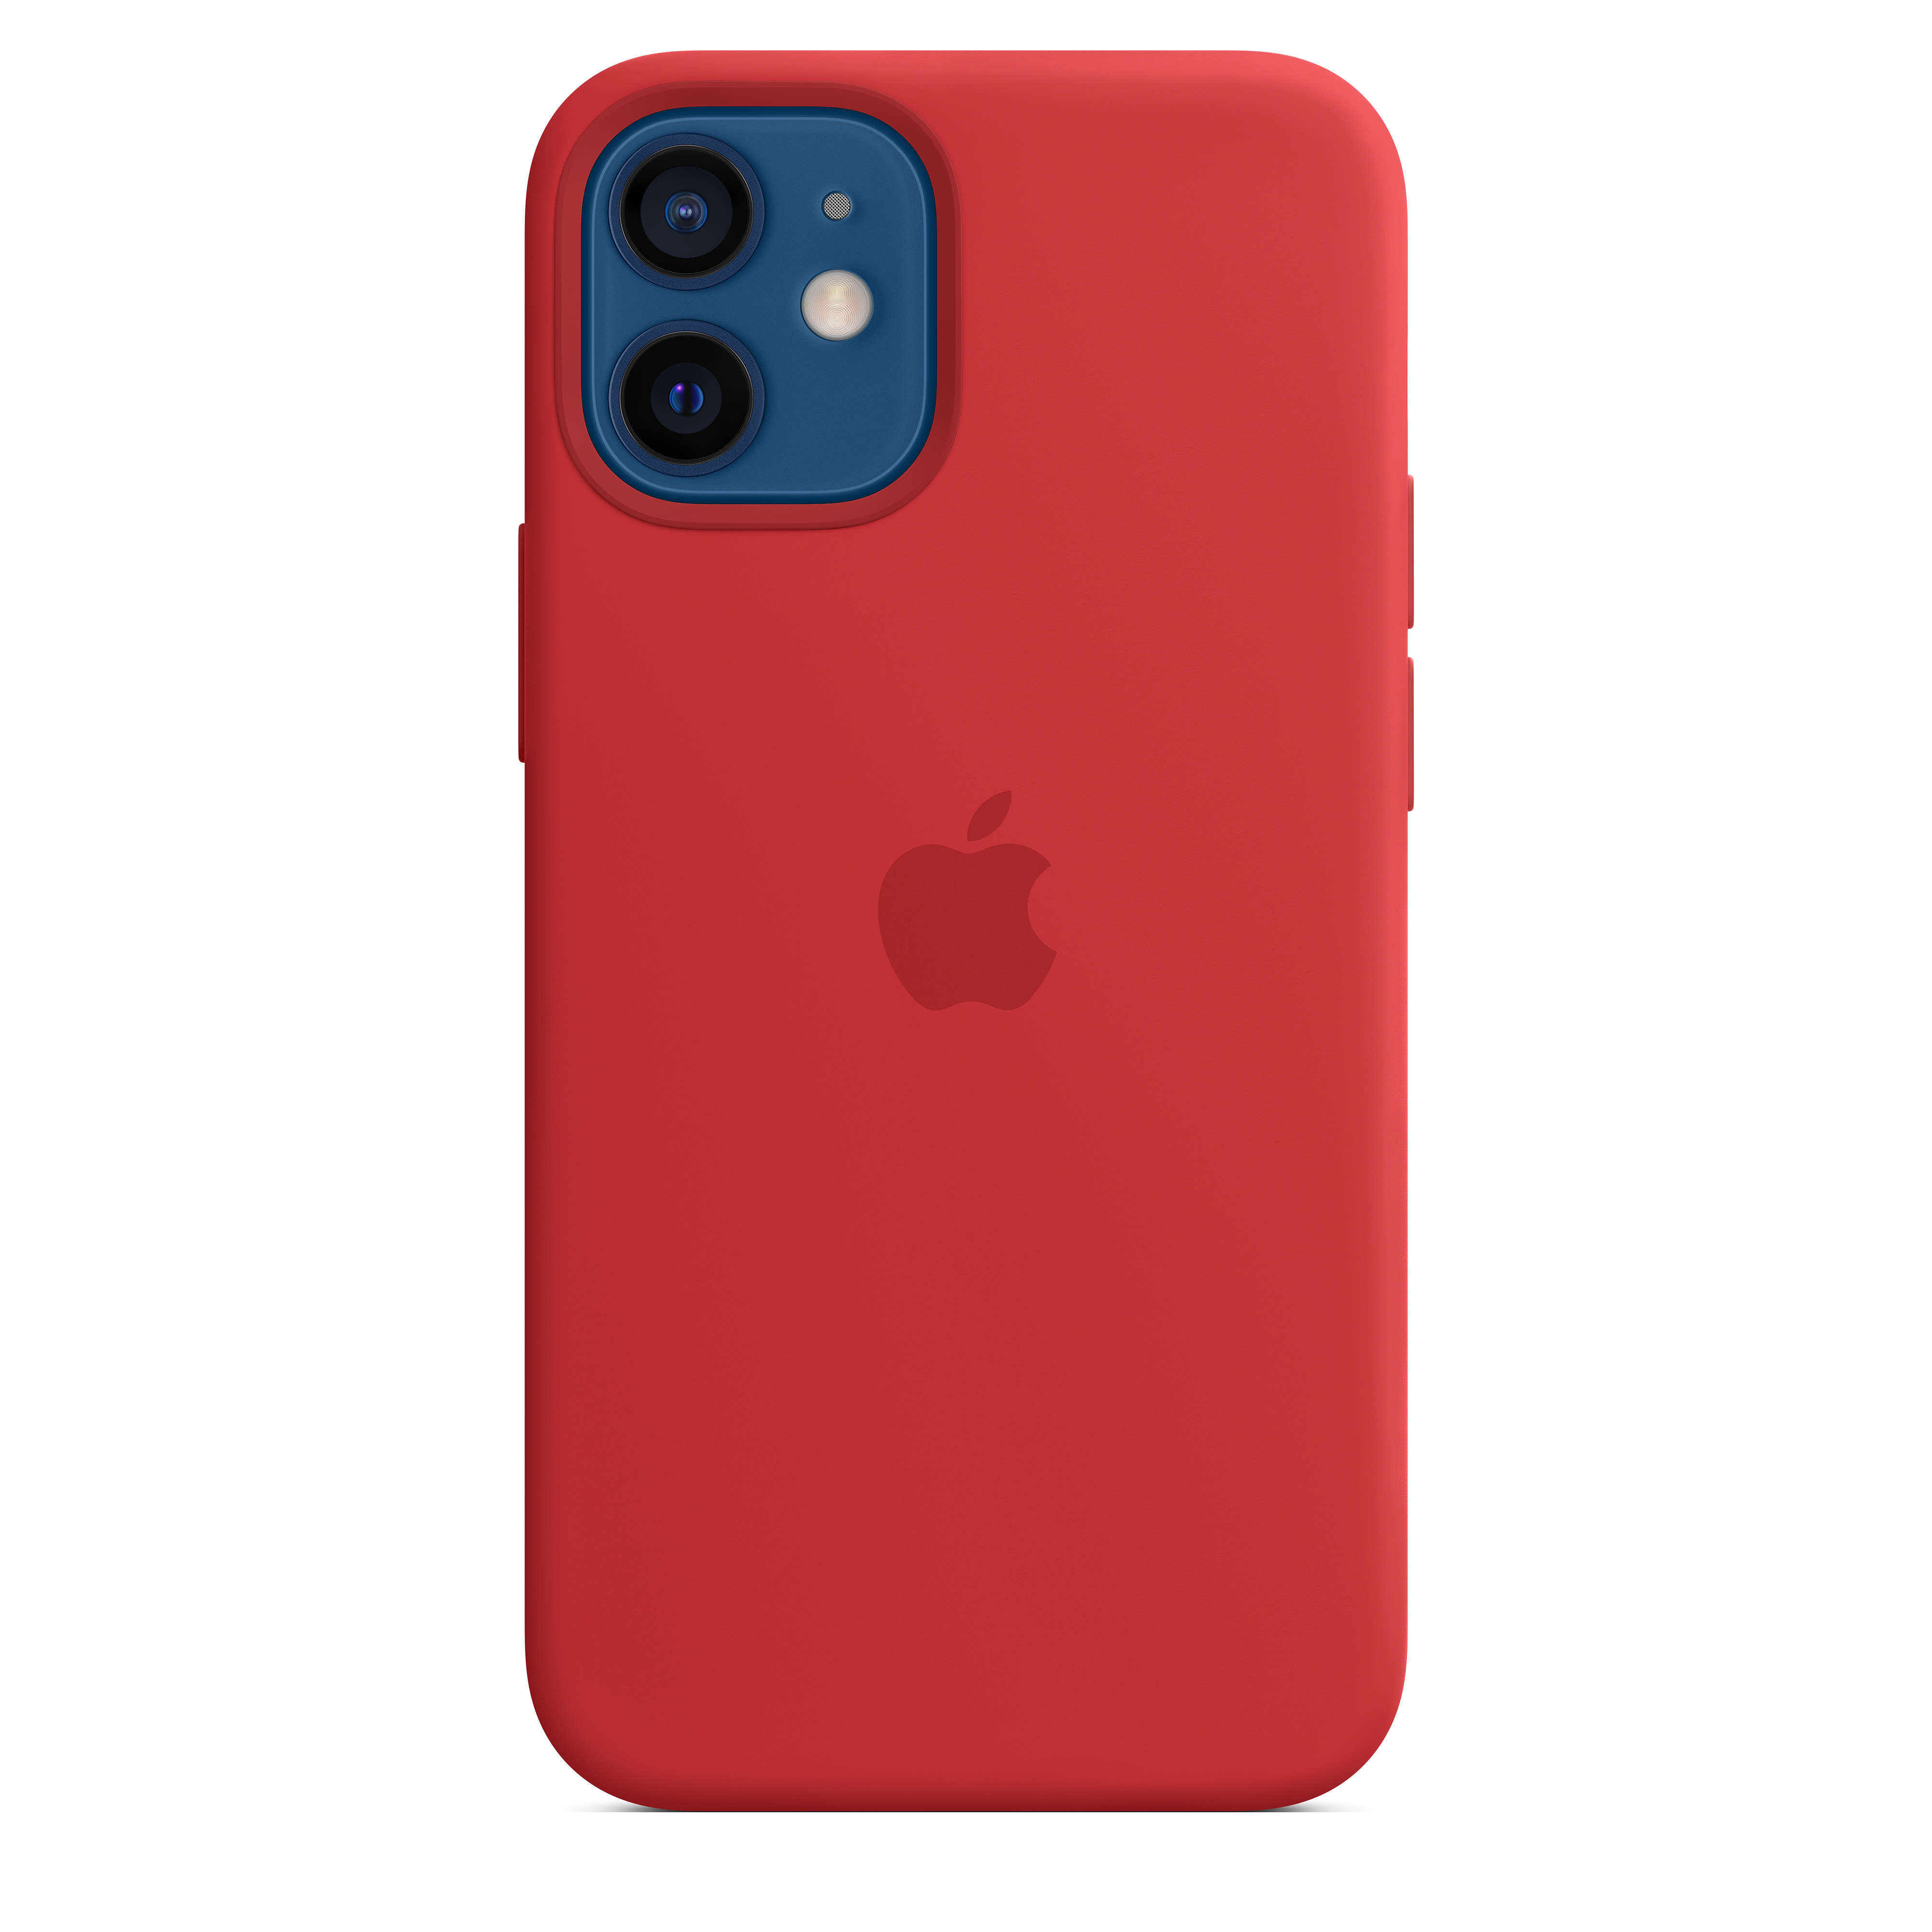 Apple - iPhone 12 mini Silicone Case with MagSafe - (PRODUCT)RED Mhkw3zm/a